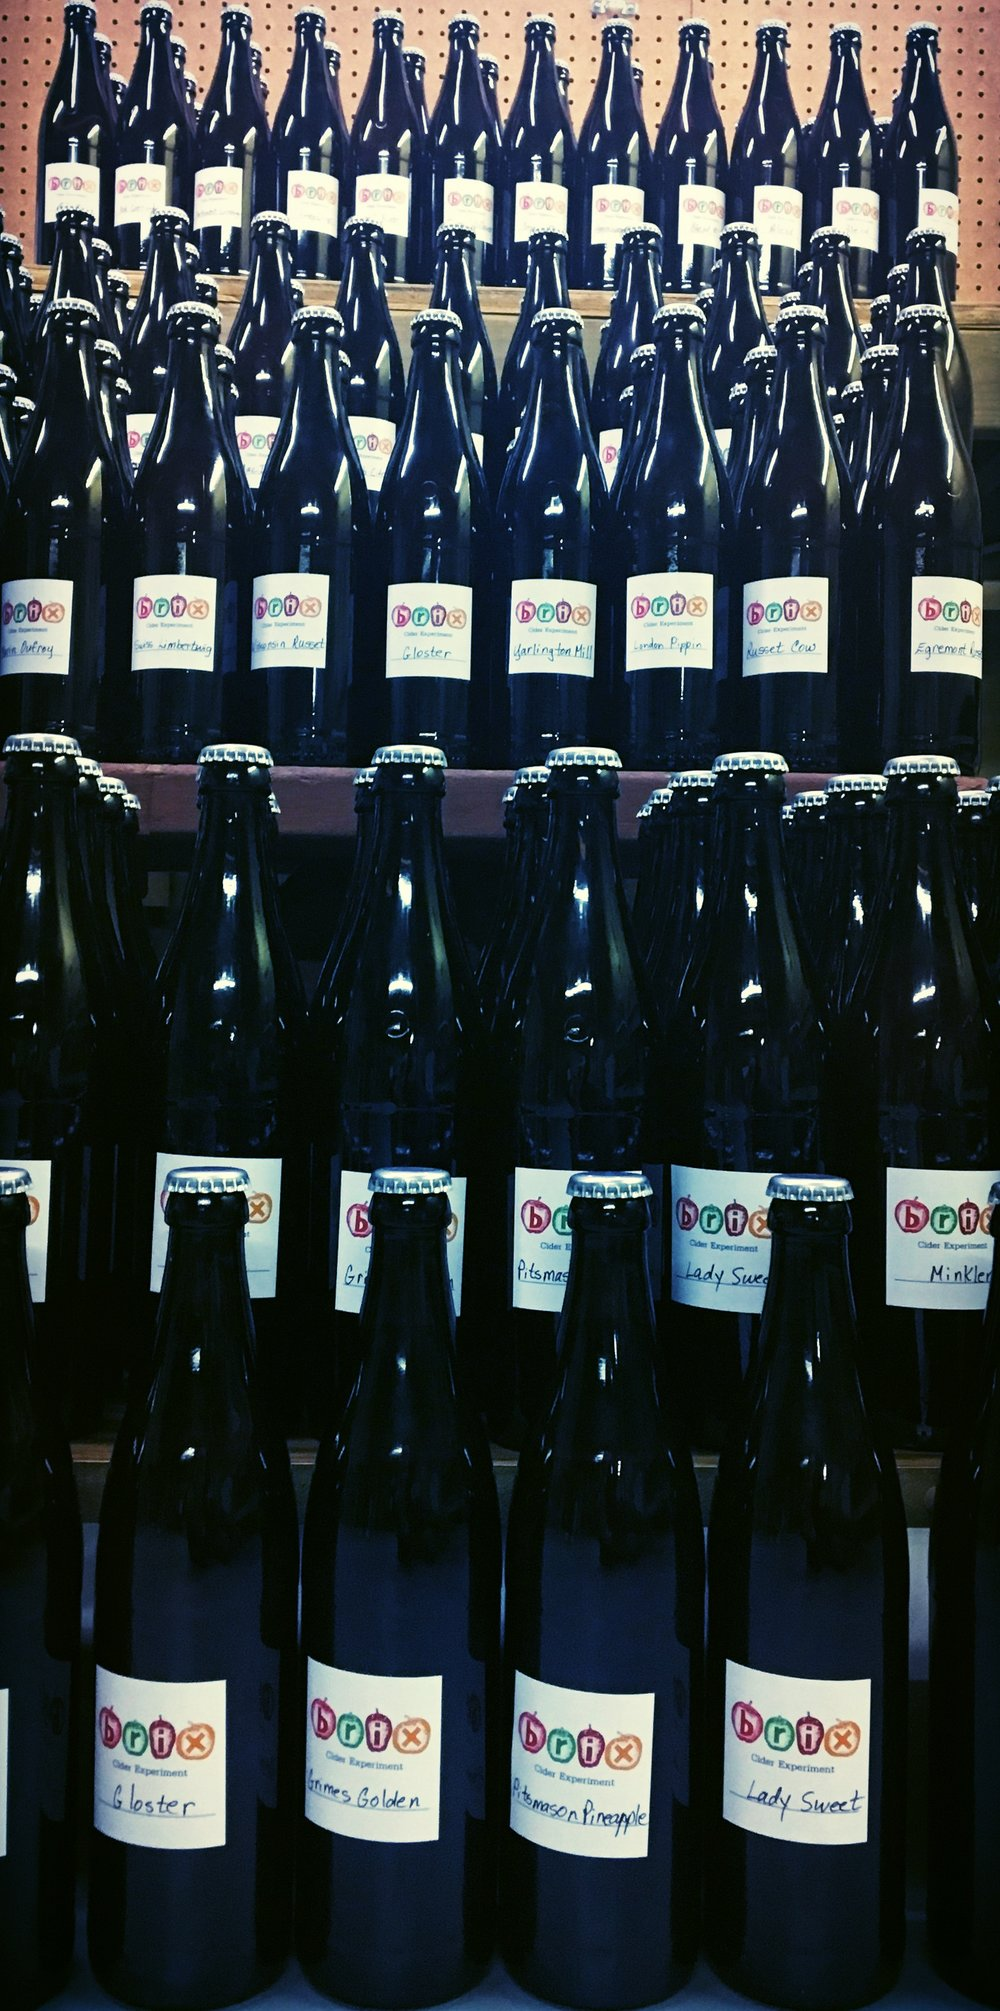 Above: Bottled Ciders